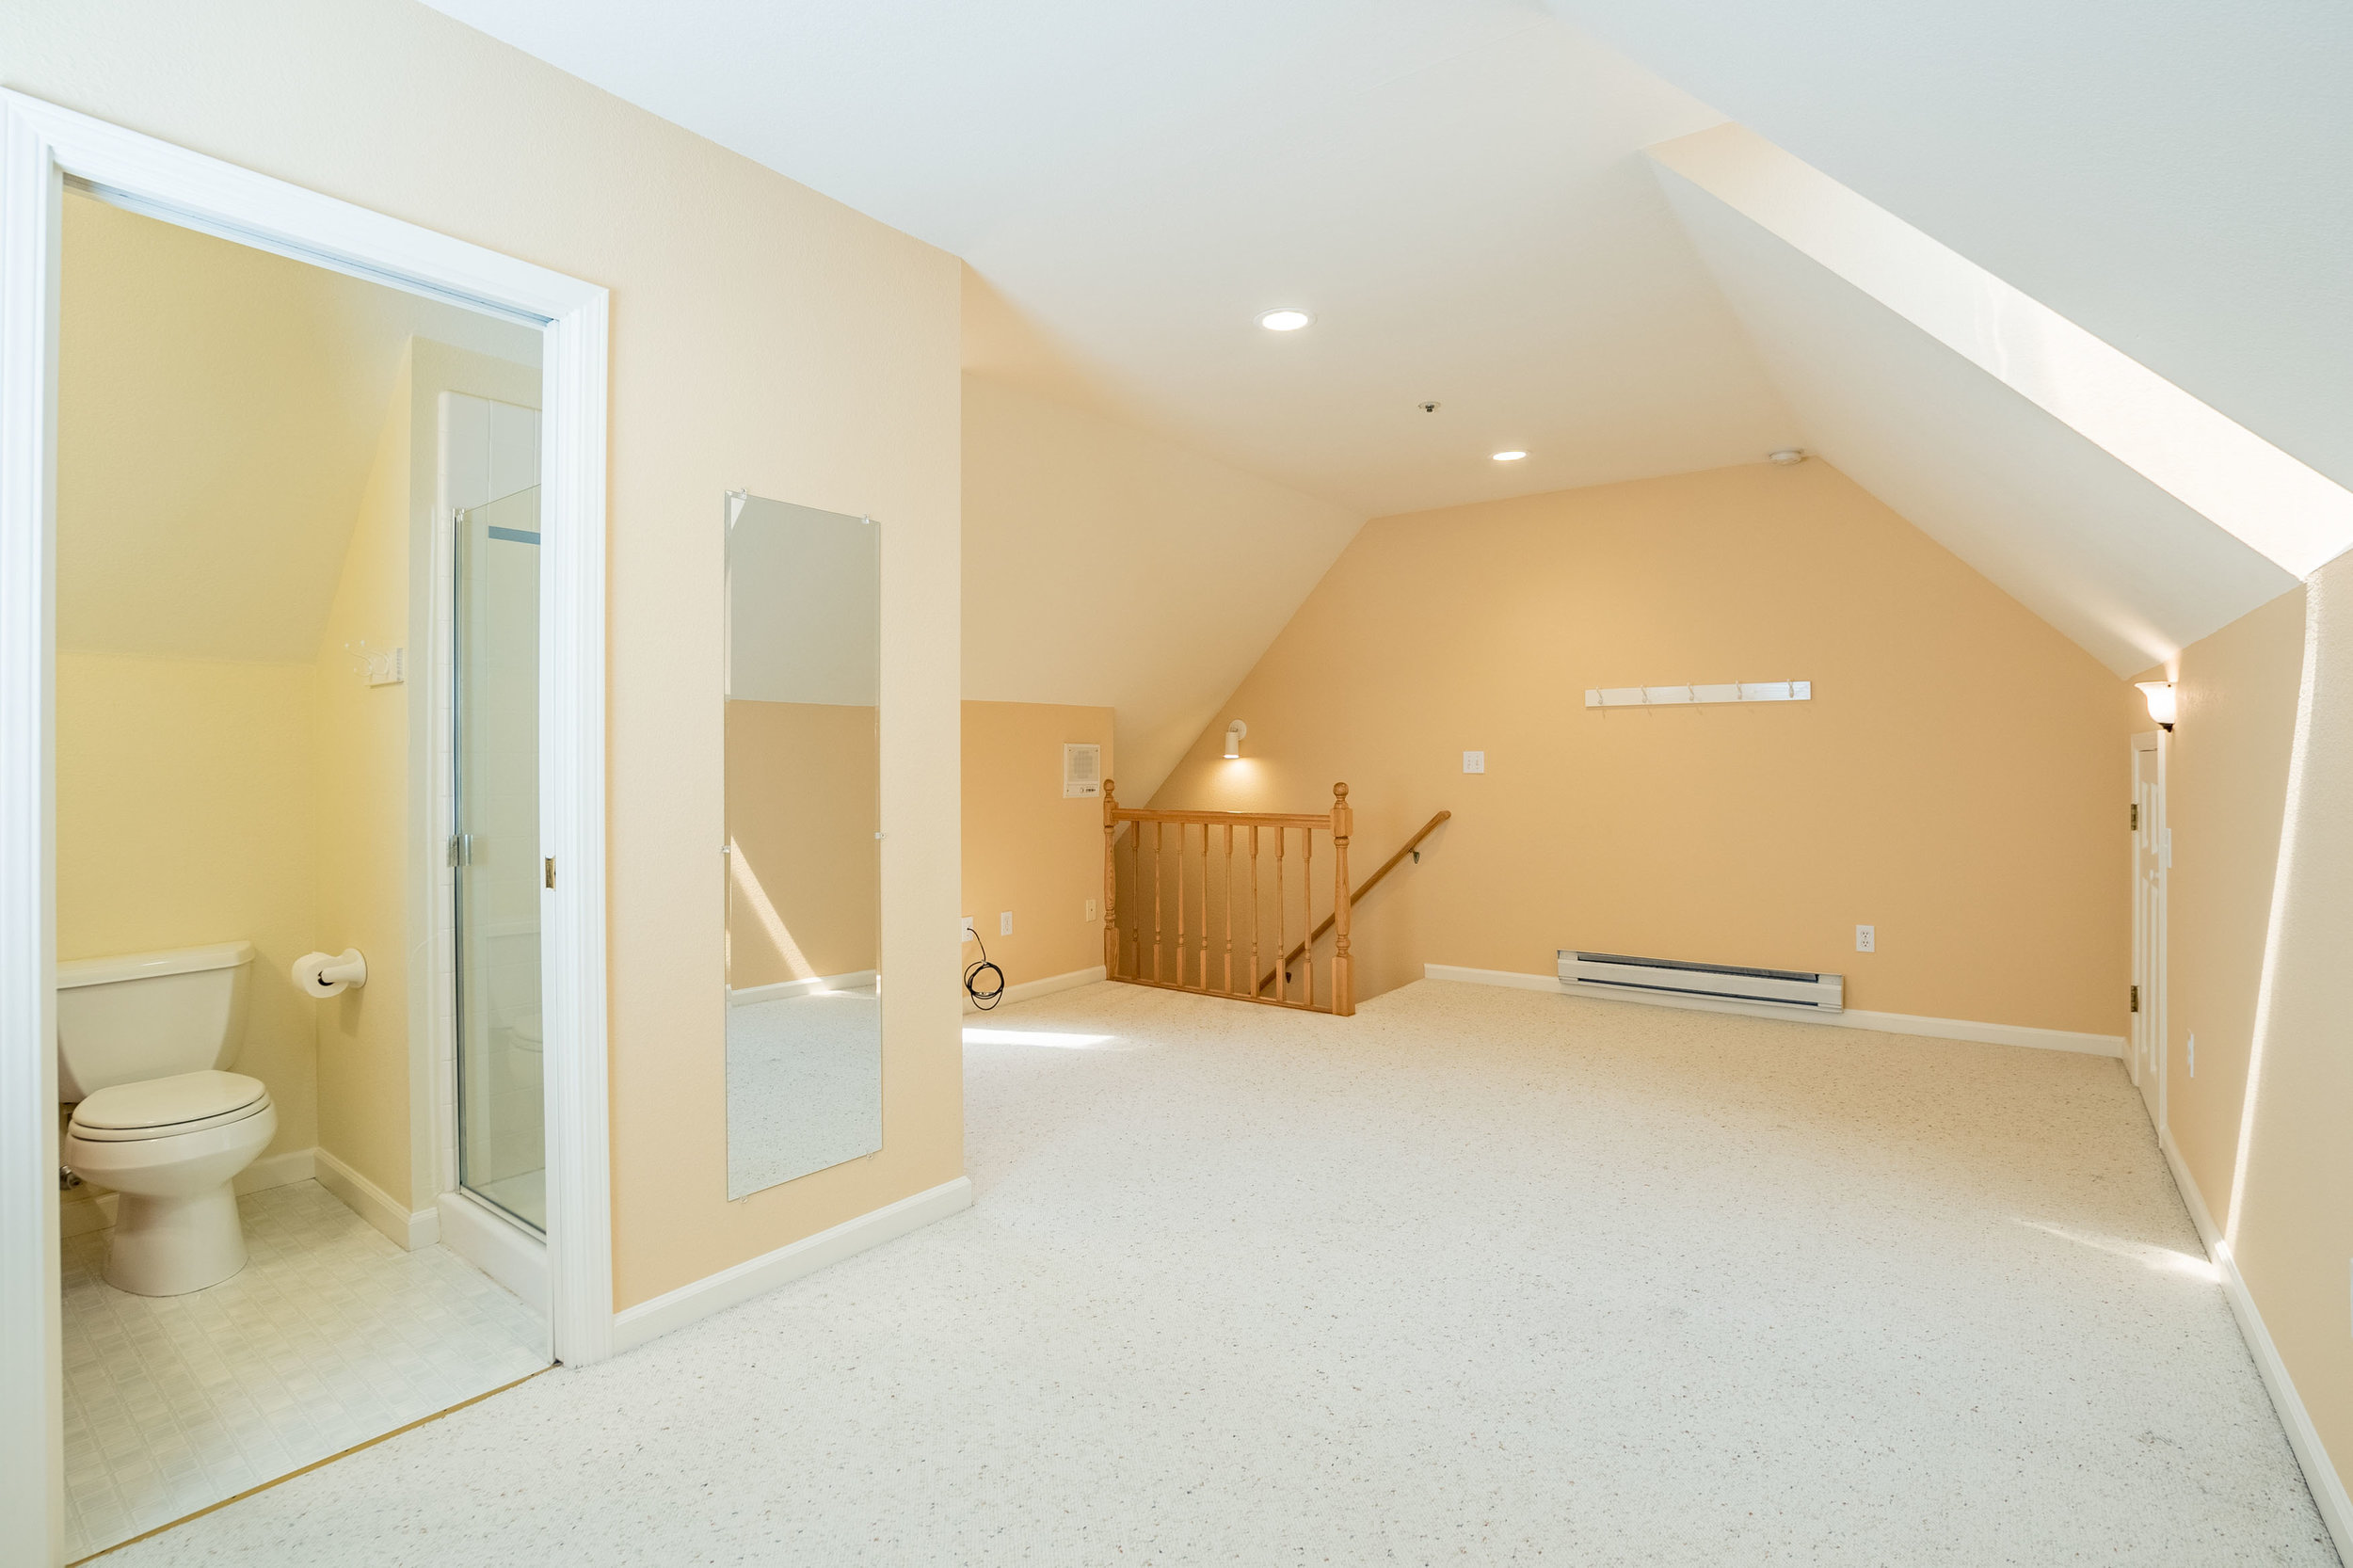 4 Beds Fully Remodeled Home Private Backyard In Westside.jpg